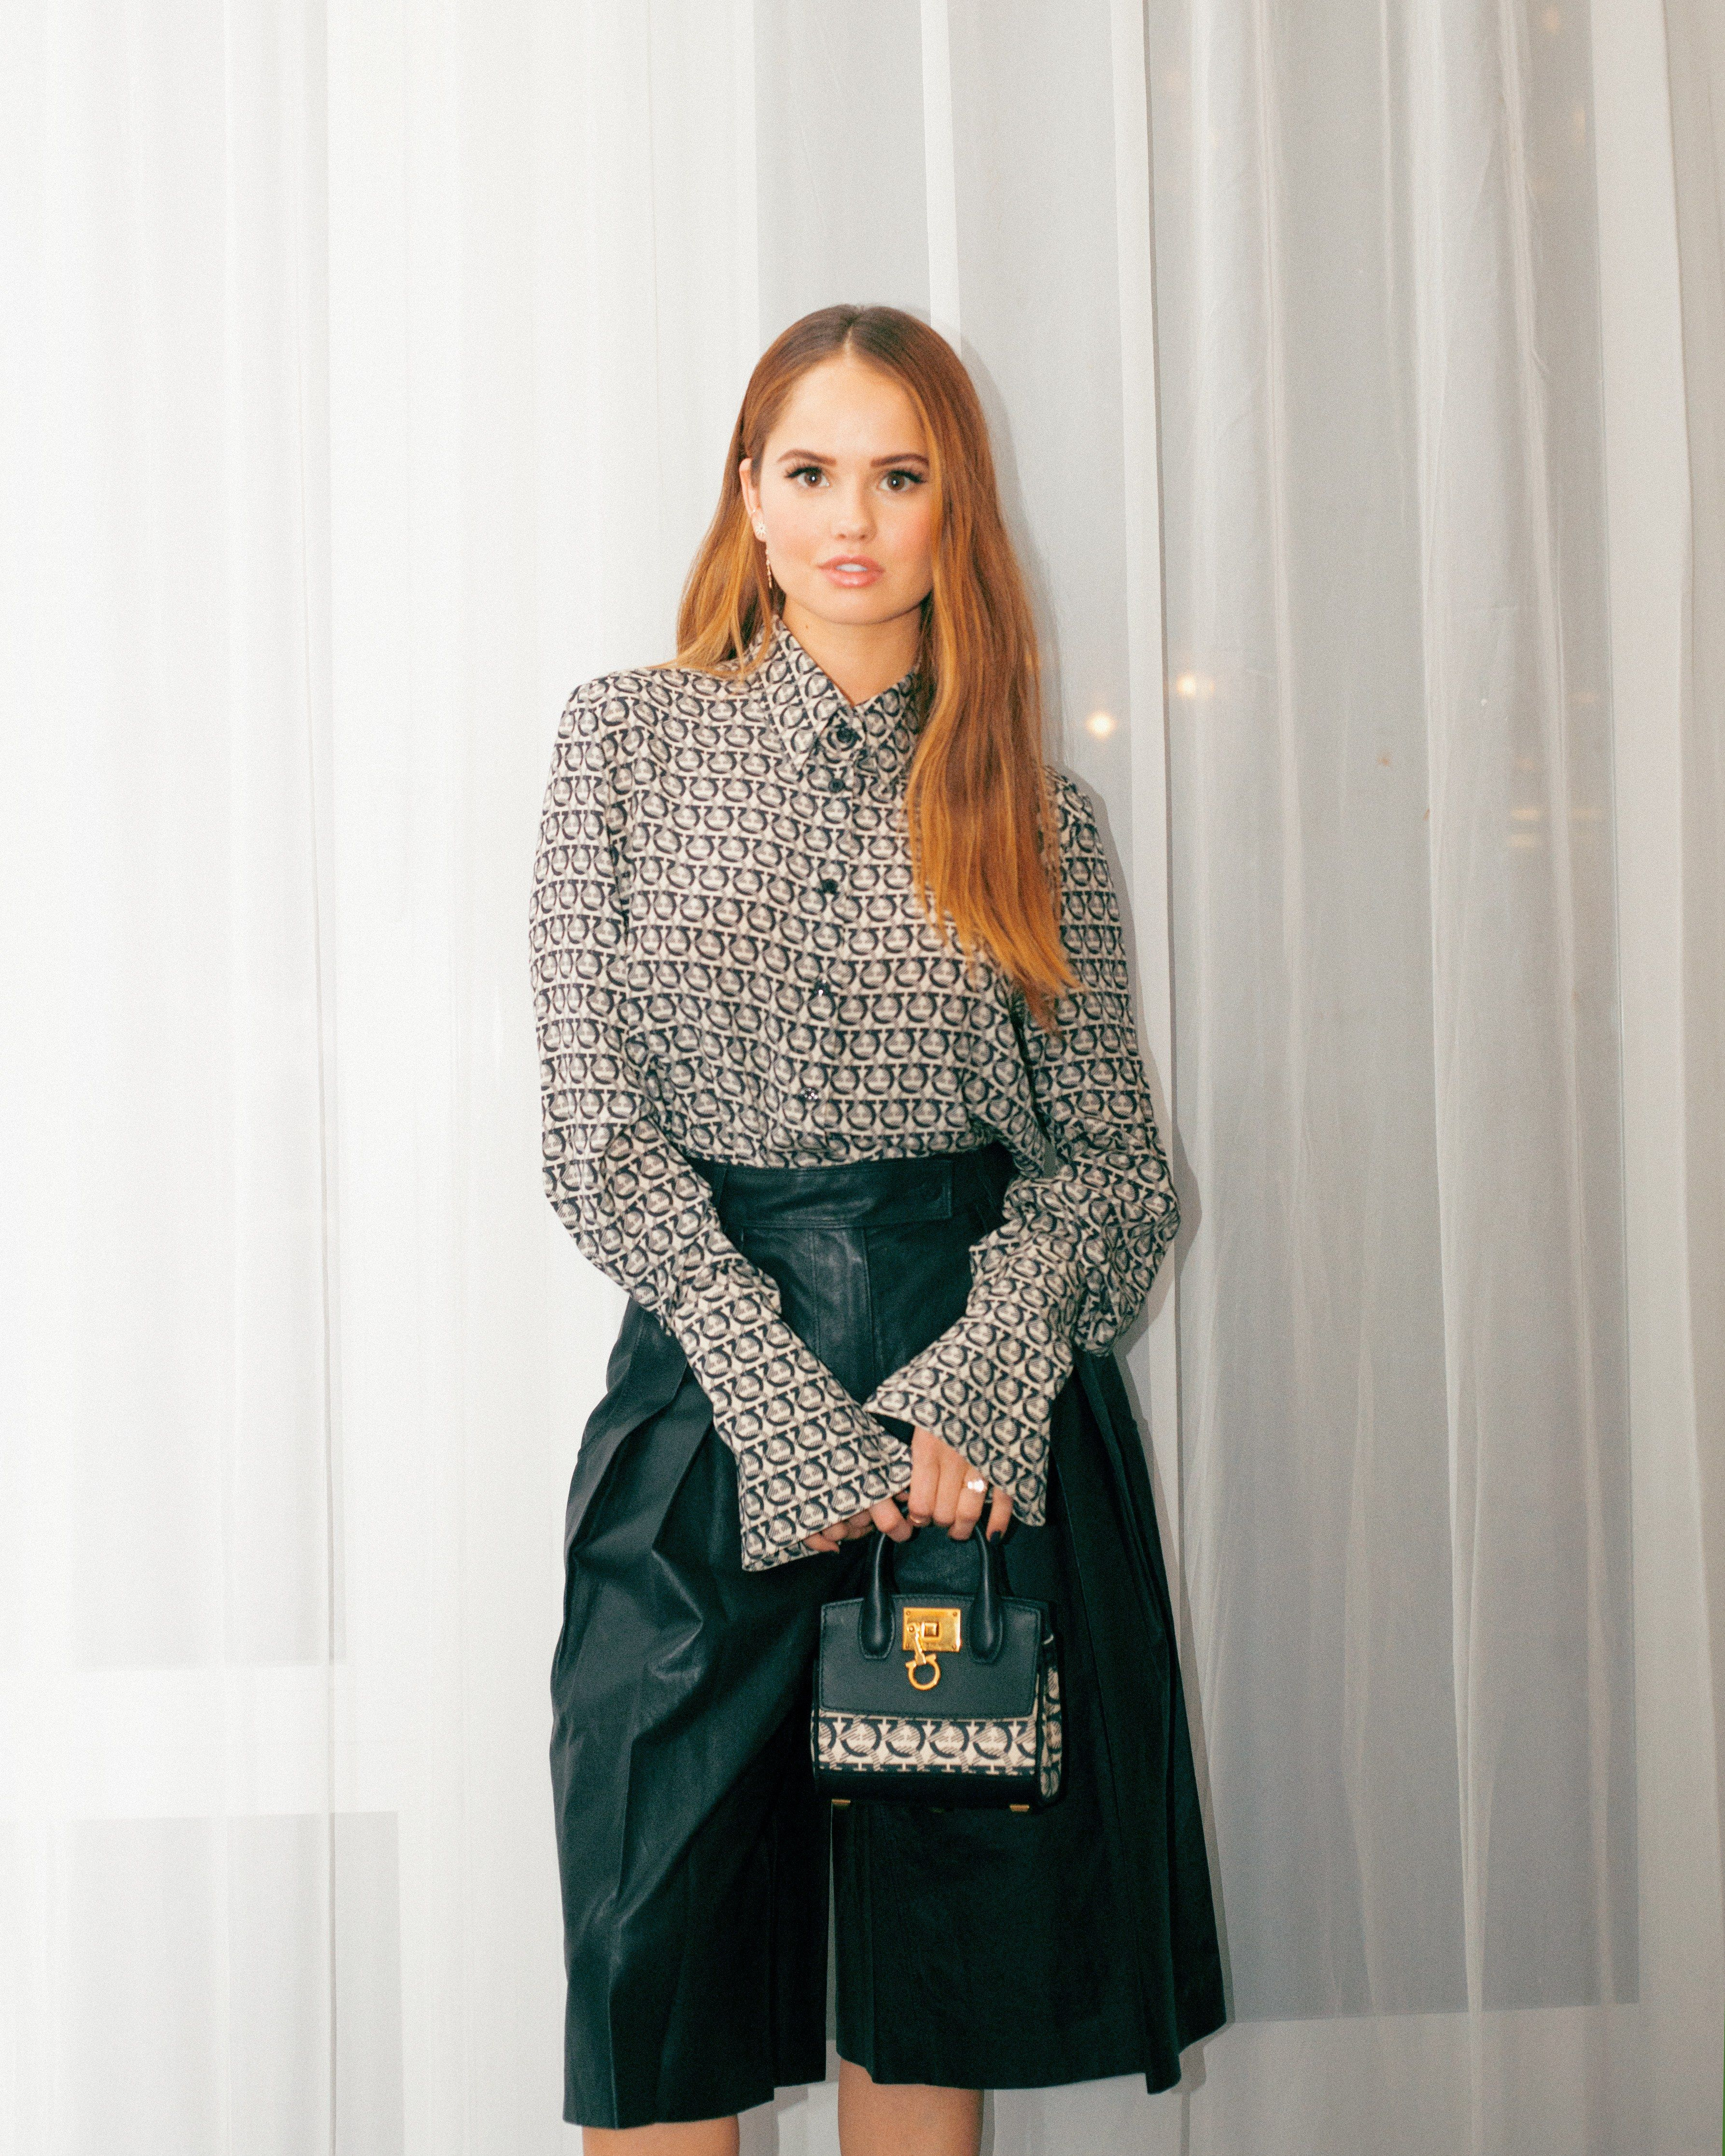 Interview Debby Ryan on 'Insatiable' Season 2, Her